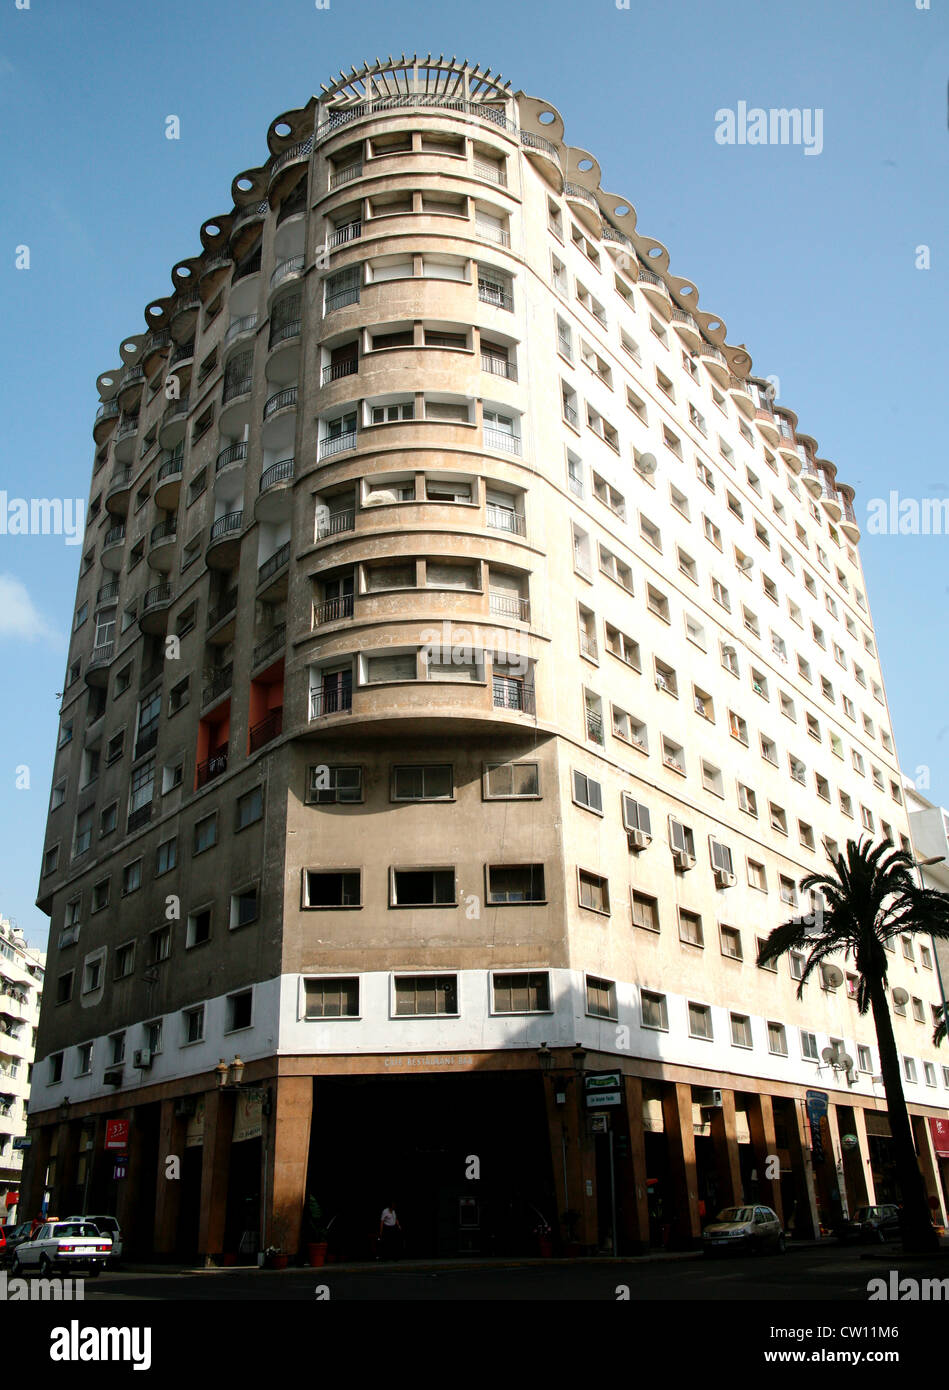 Marignan building in Casablanca 1954, architecture by Isaac Levy and Louis Zeligson Stock Photo